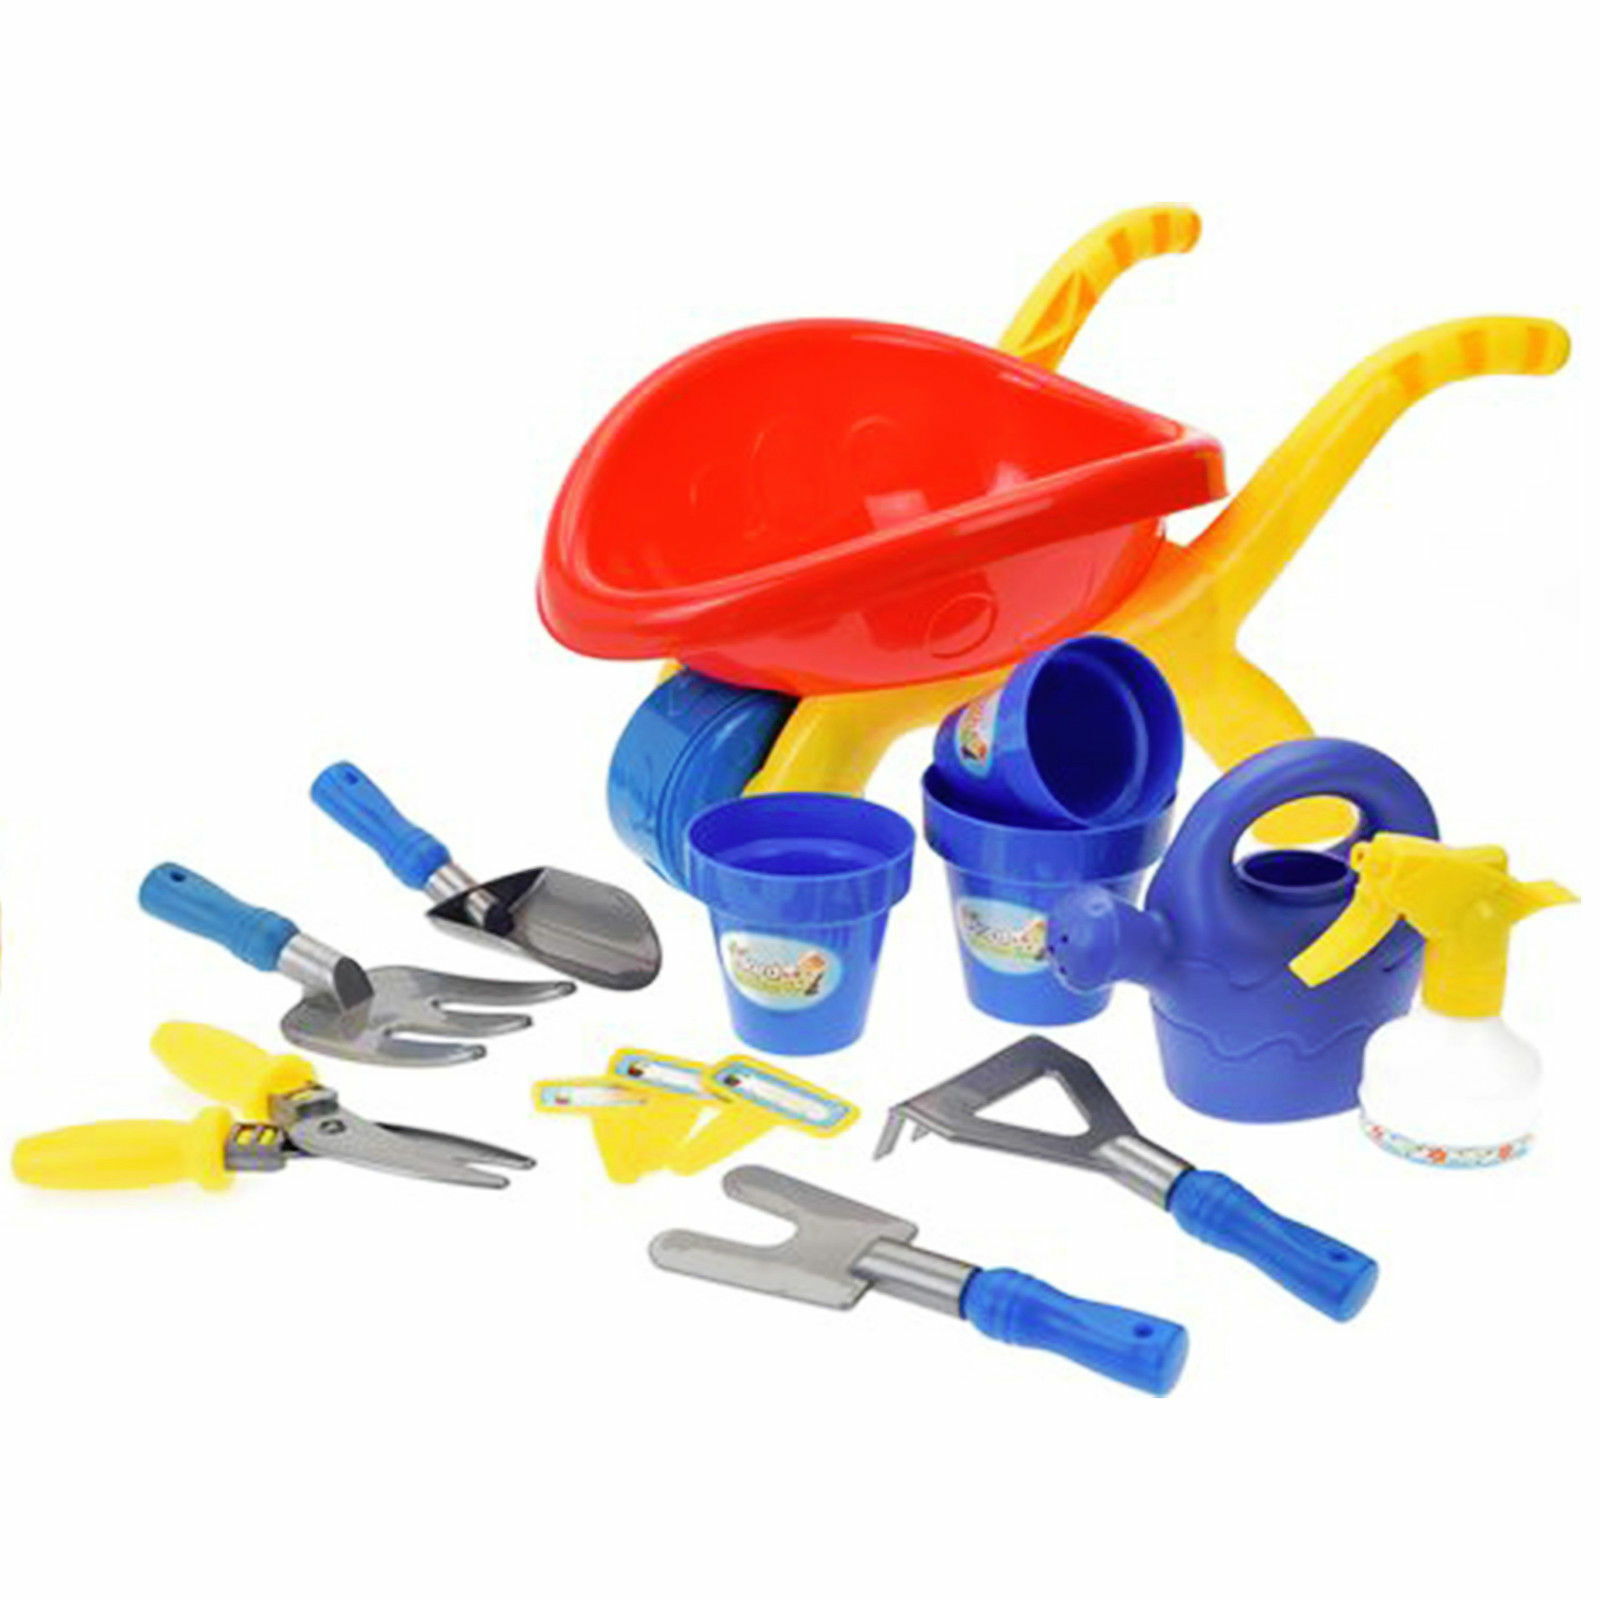 Wheelbarrow /& Garden Set Wheel Barrow Gardening Toy For Children